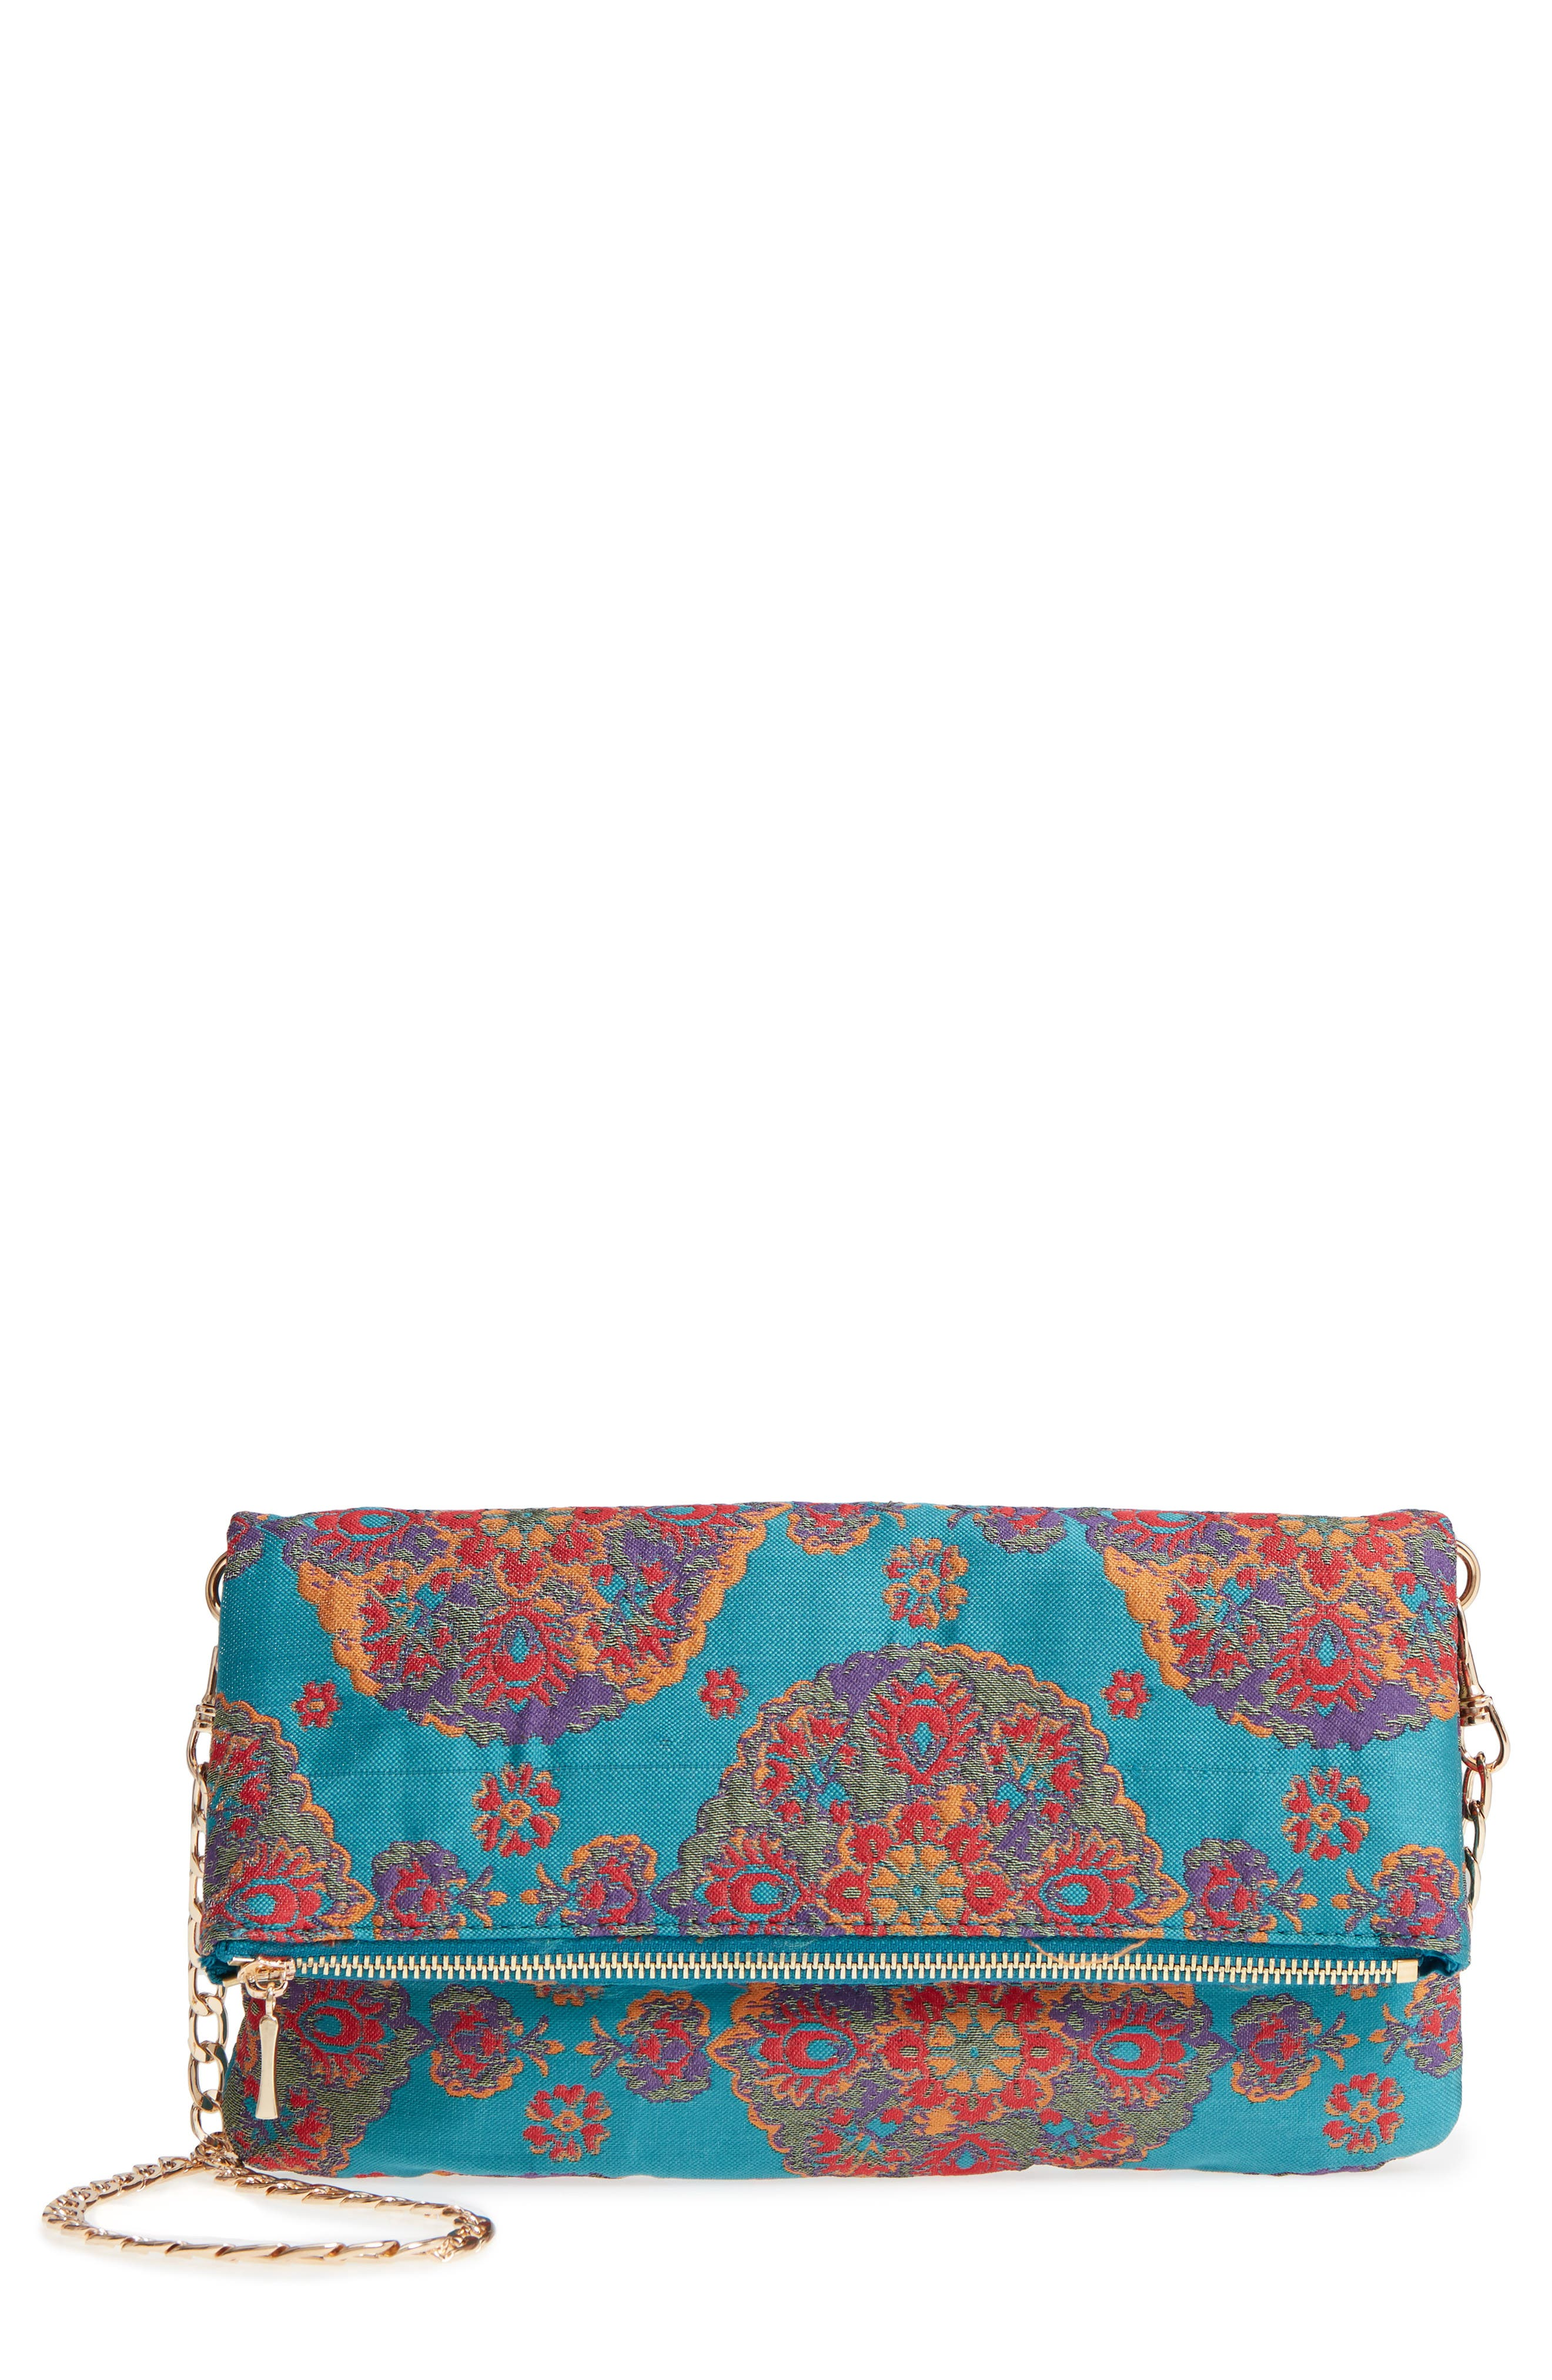 Sole Society Floral Jacquard Foldover Clutch